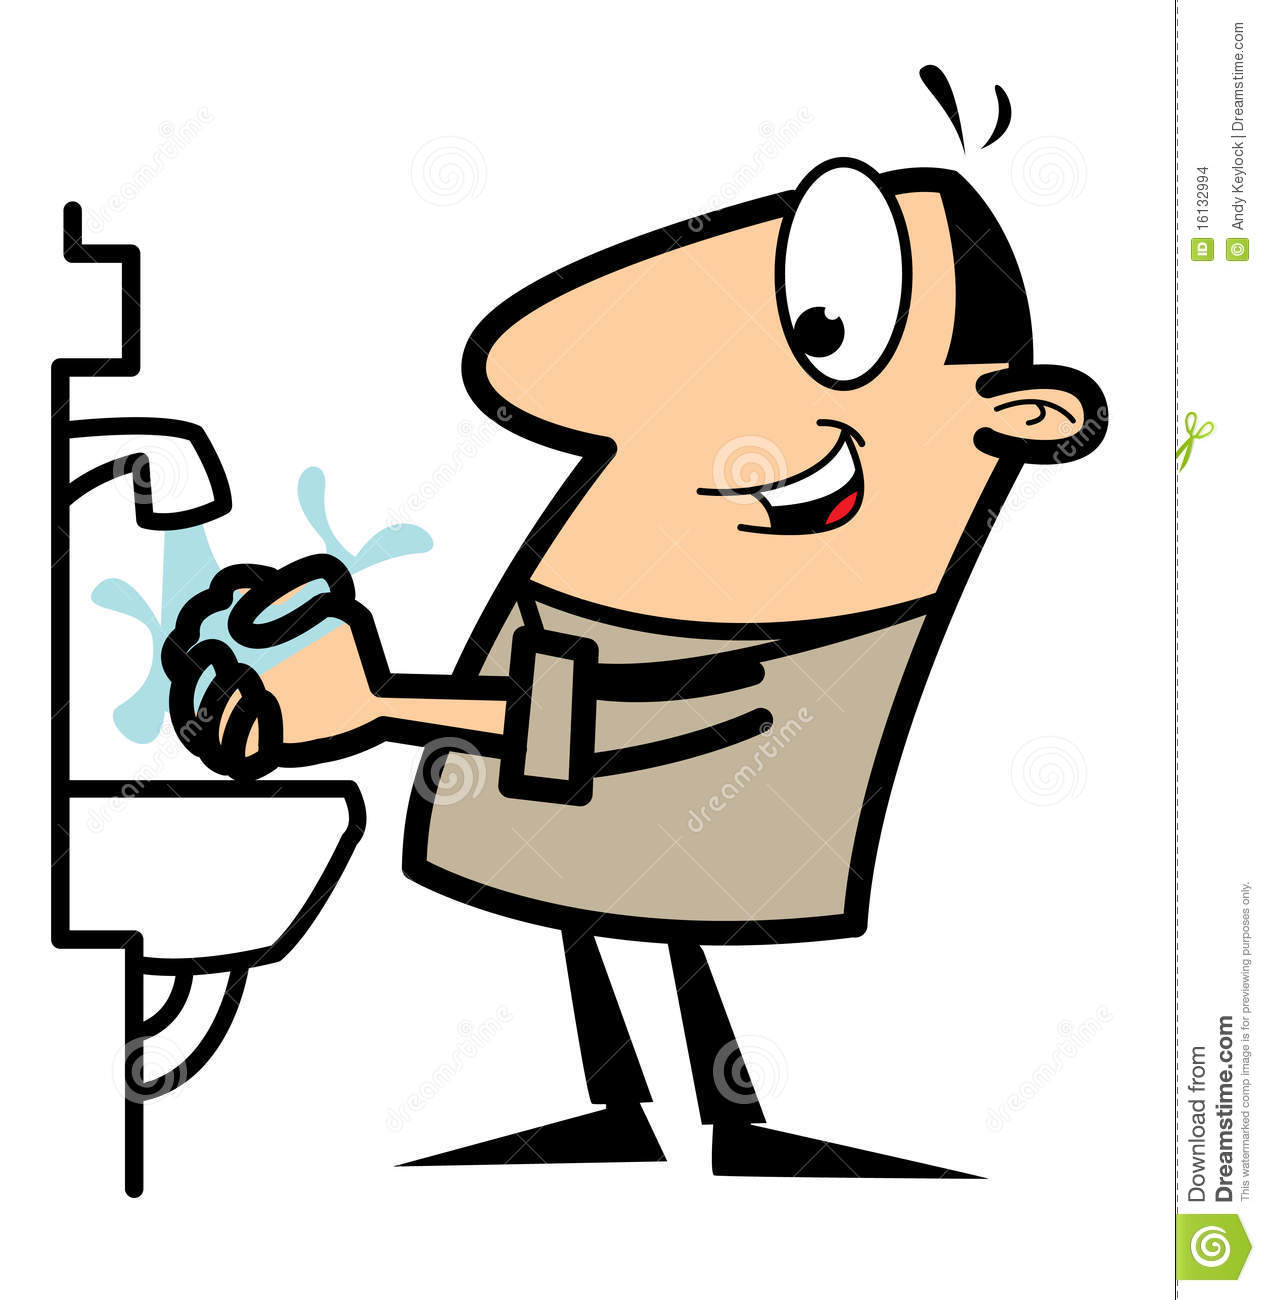 Cartoon Man Washing His Hands Stock Images - Image: 16132994